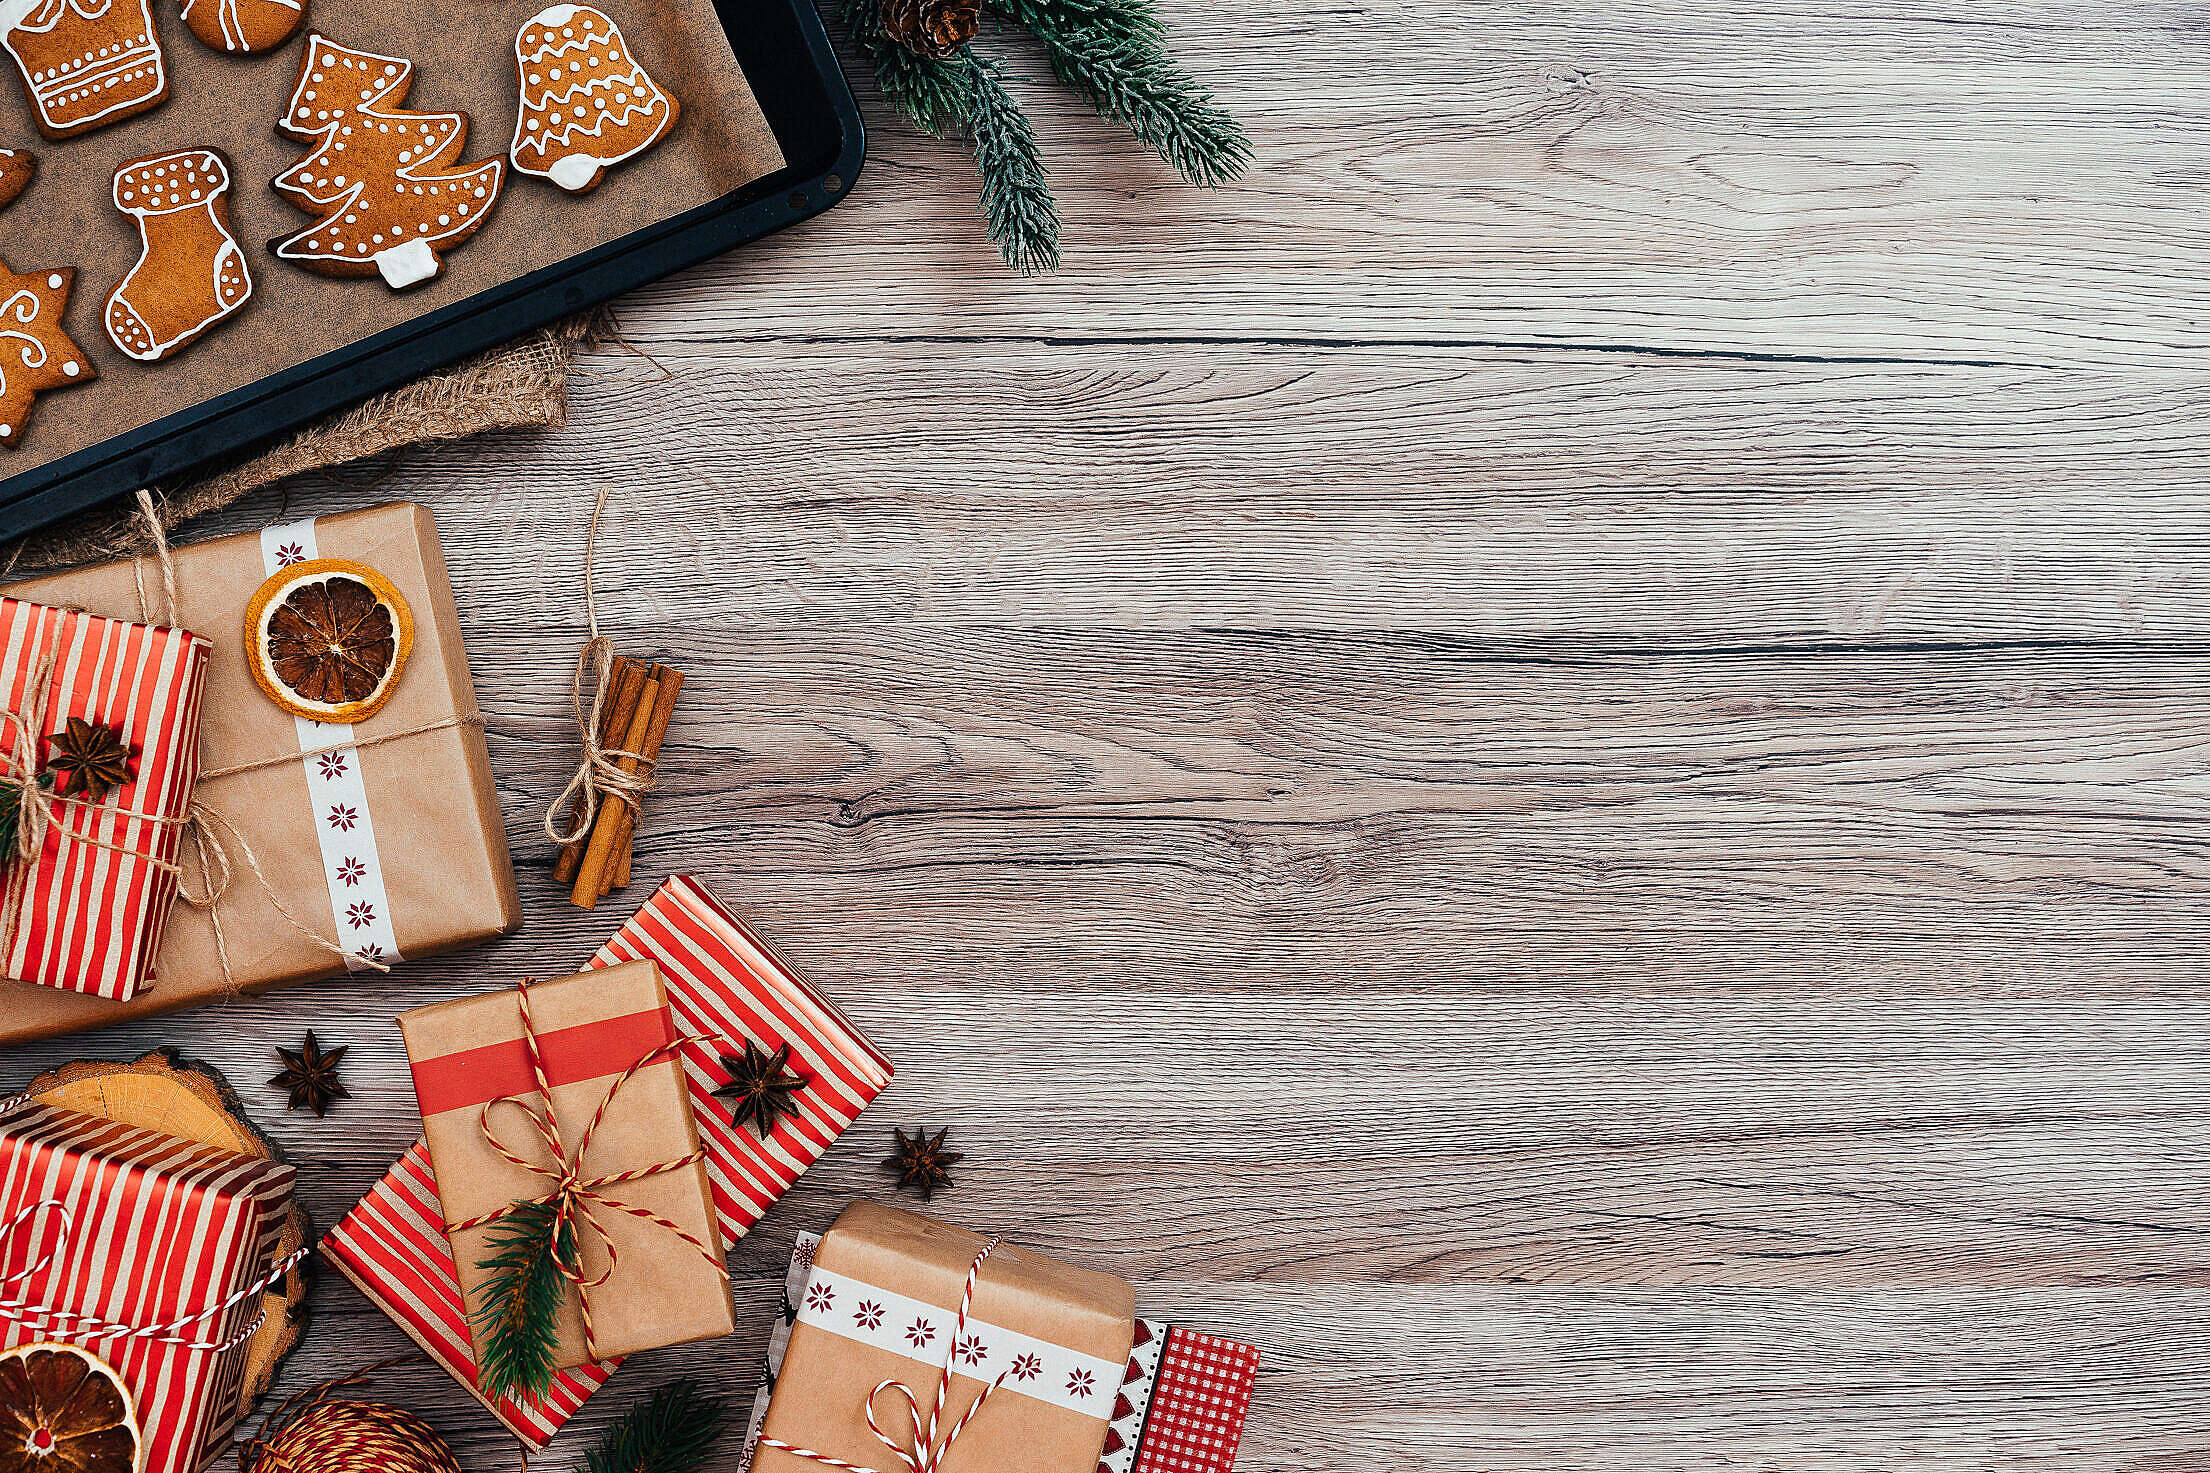 Christmas Photo with Space for Text Free Stock Photo